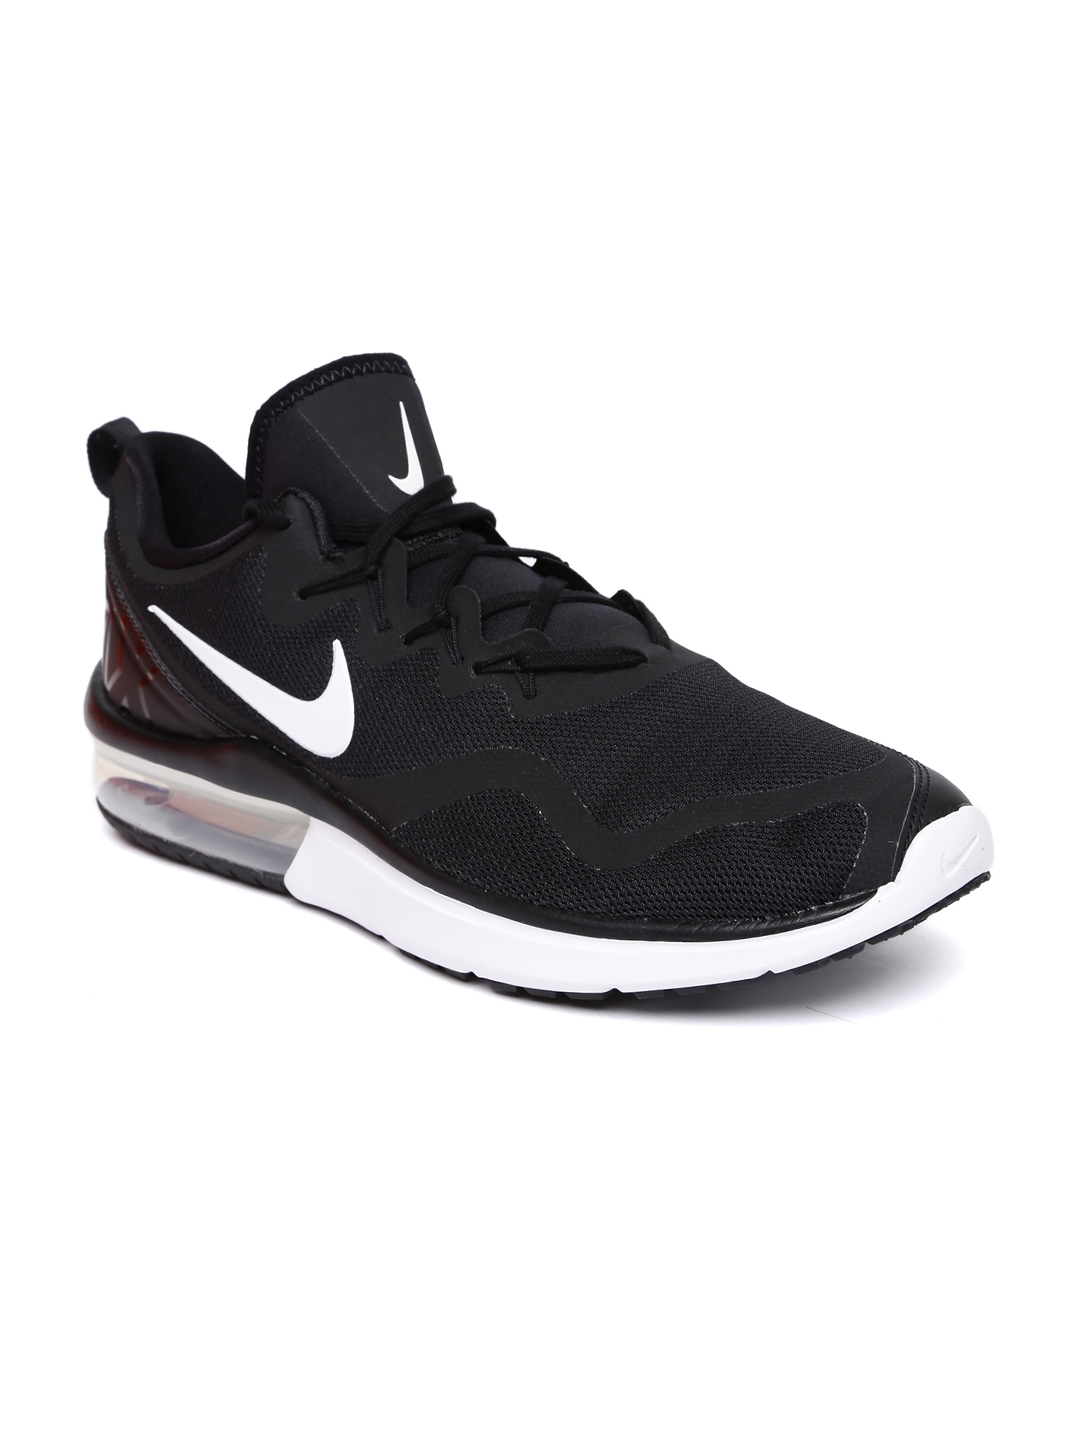 2d66a4cd0f4 Buy Nike Men Black AIR MAX FURY Running Shoes - Sports Shoes for Men ...